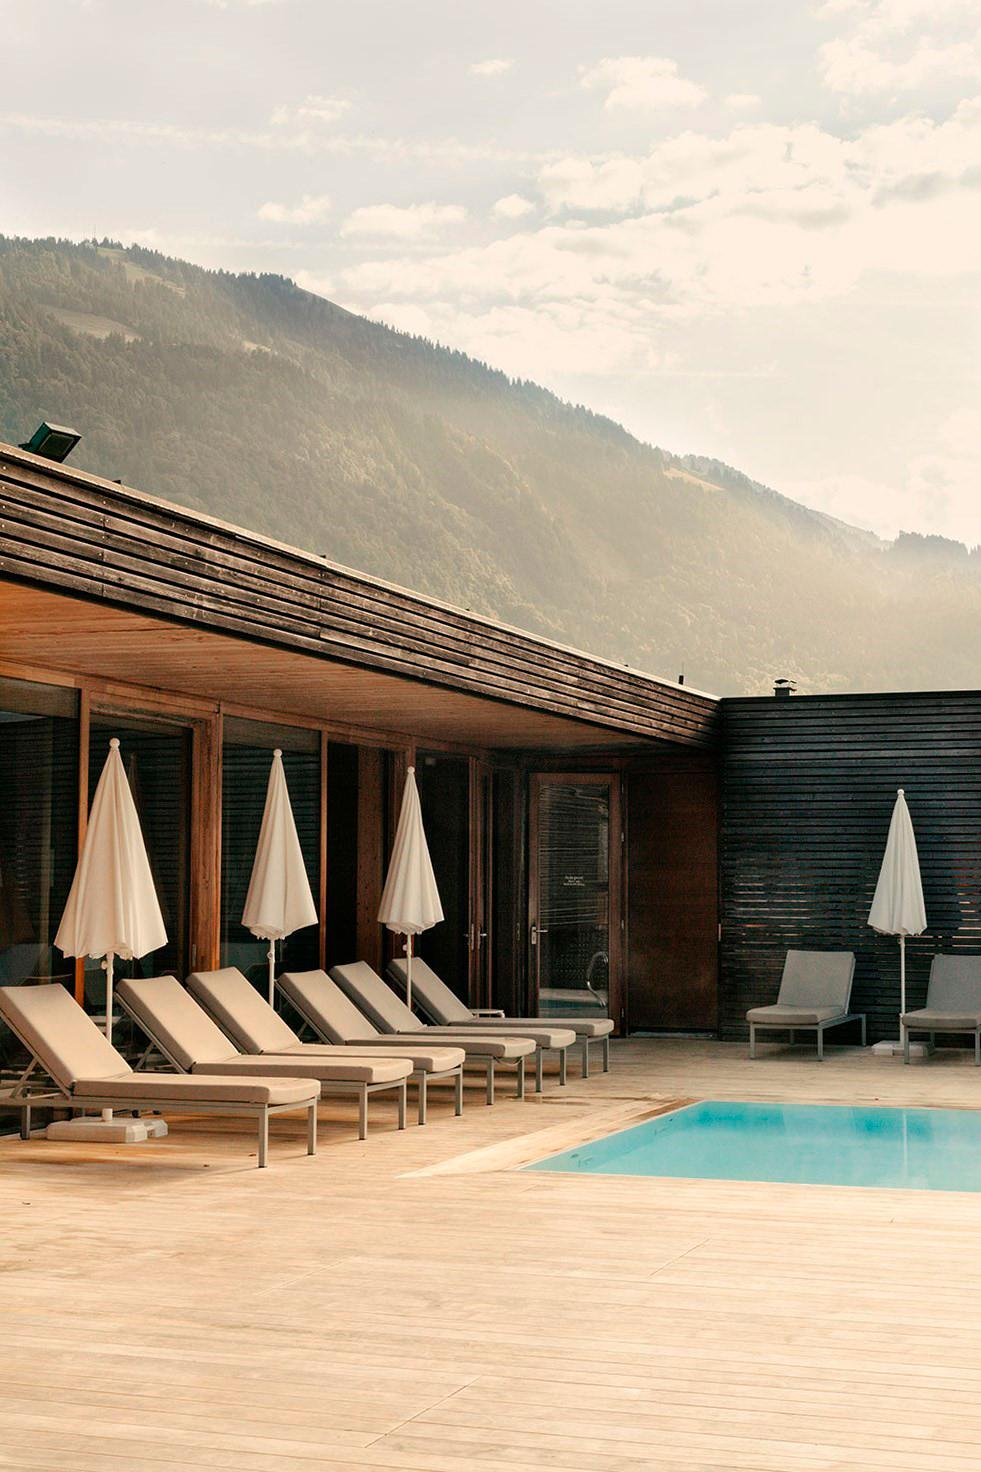 Pool at Susanne Kaufmann spa in Bezau that looks out onto the Alps